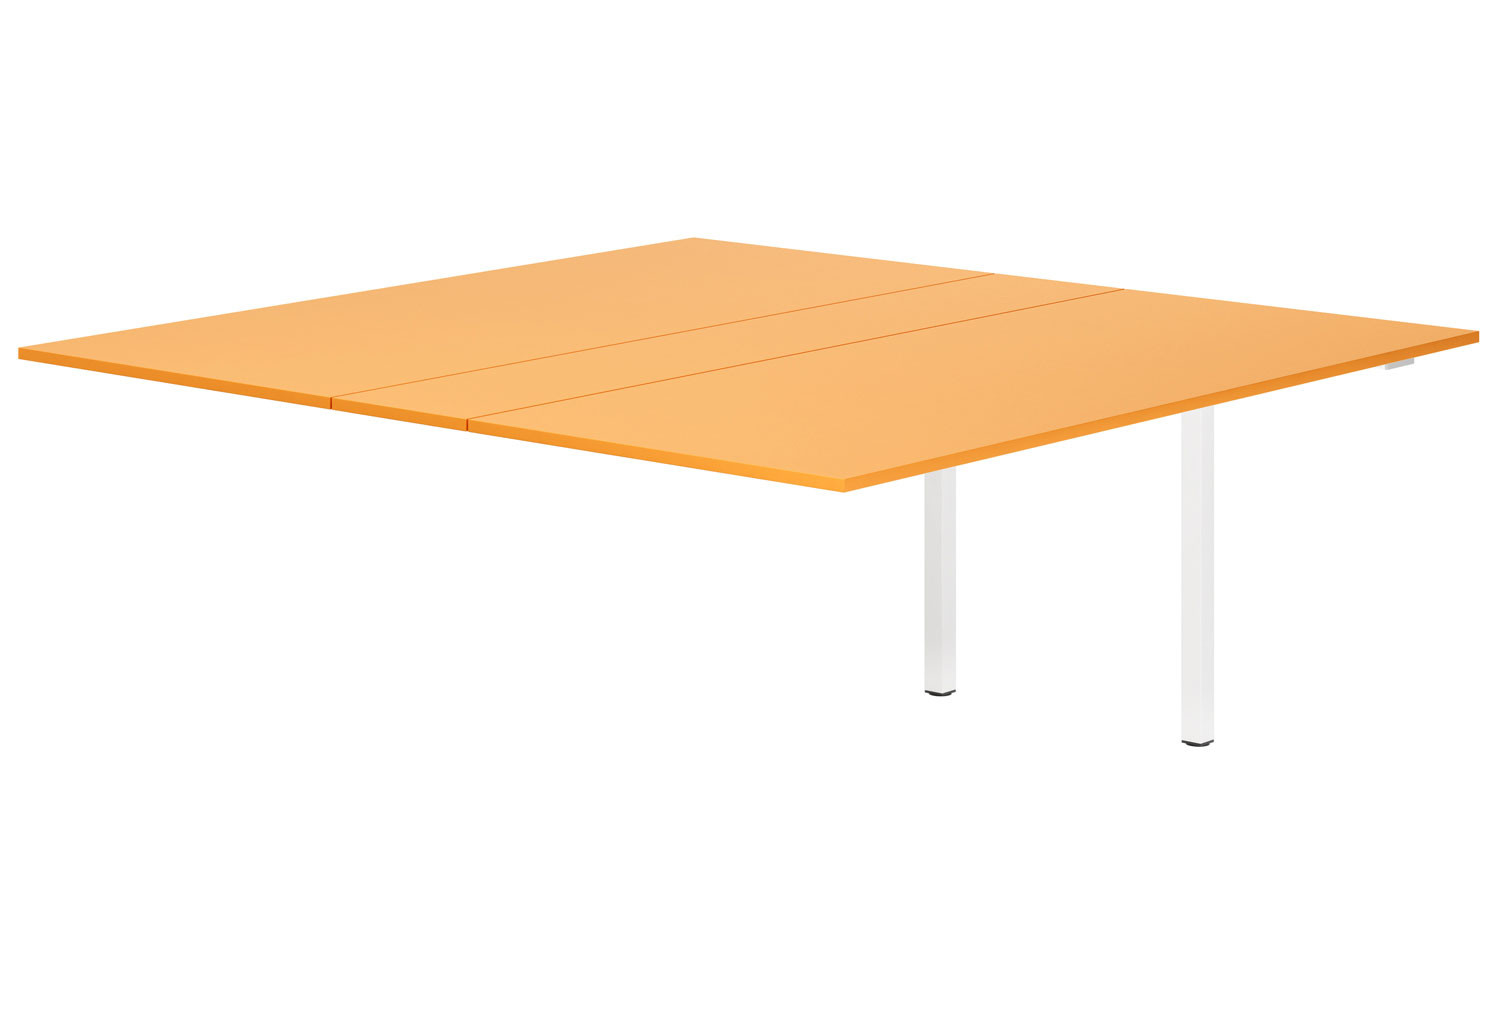 Campos Meeting Table Add On Unit (Orange)